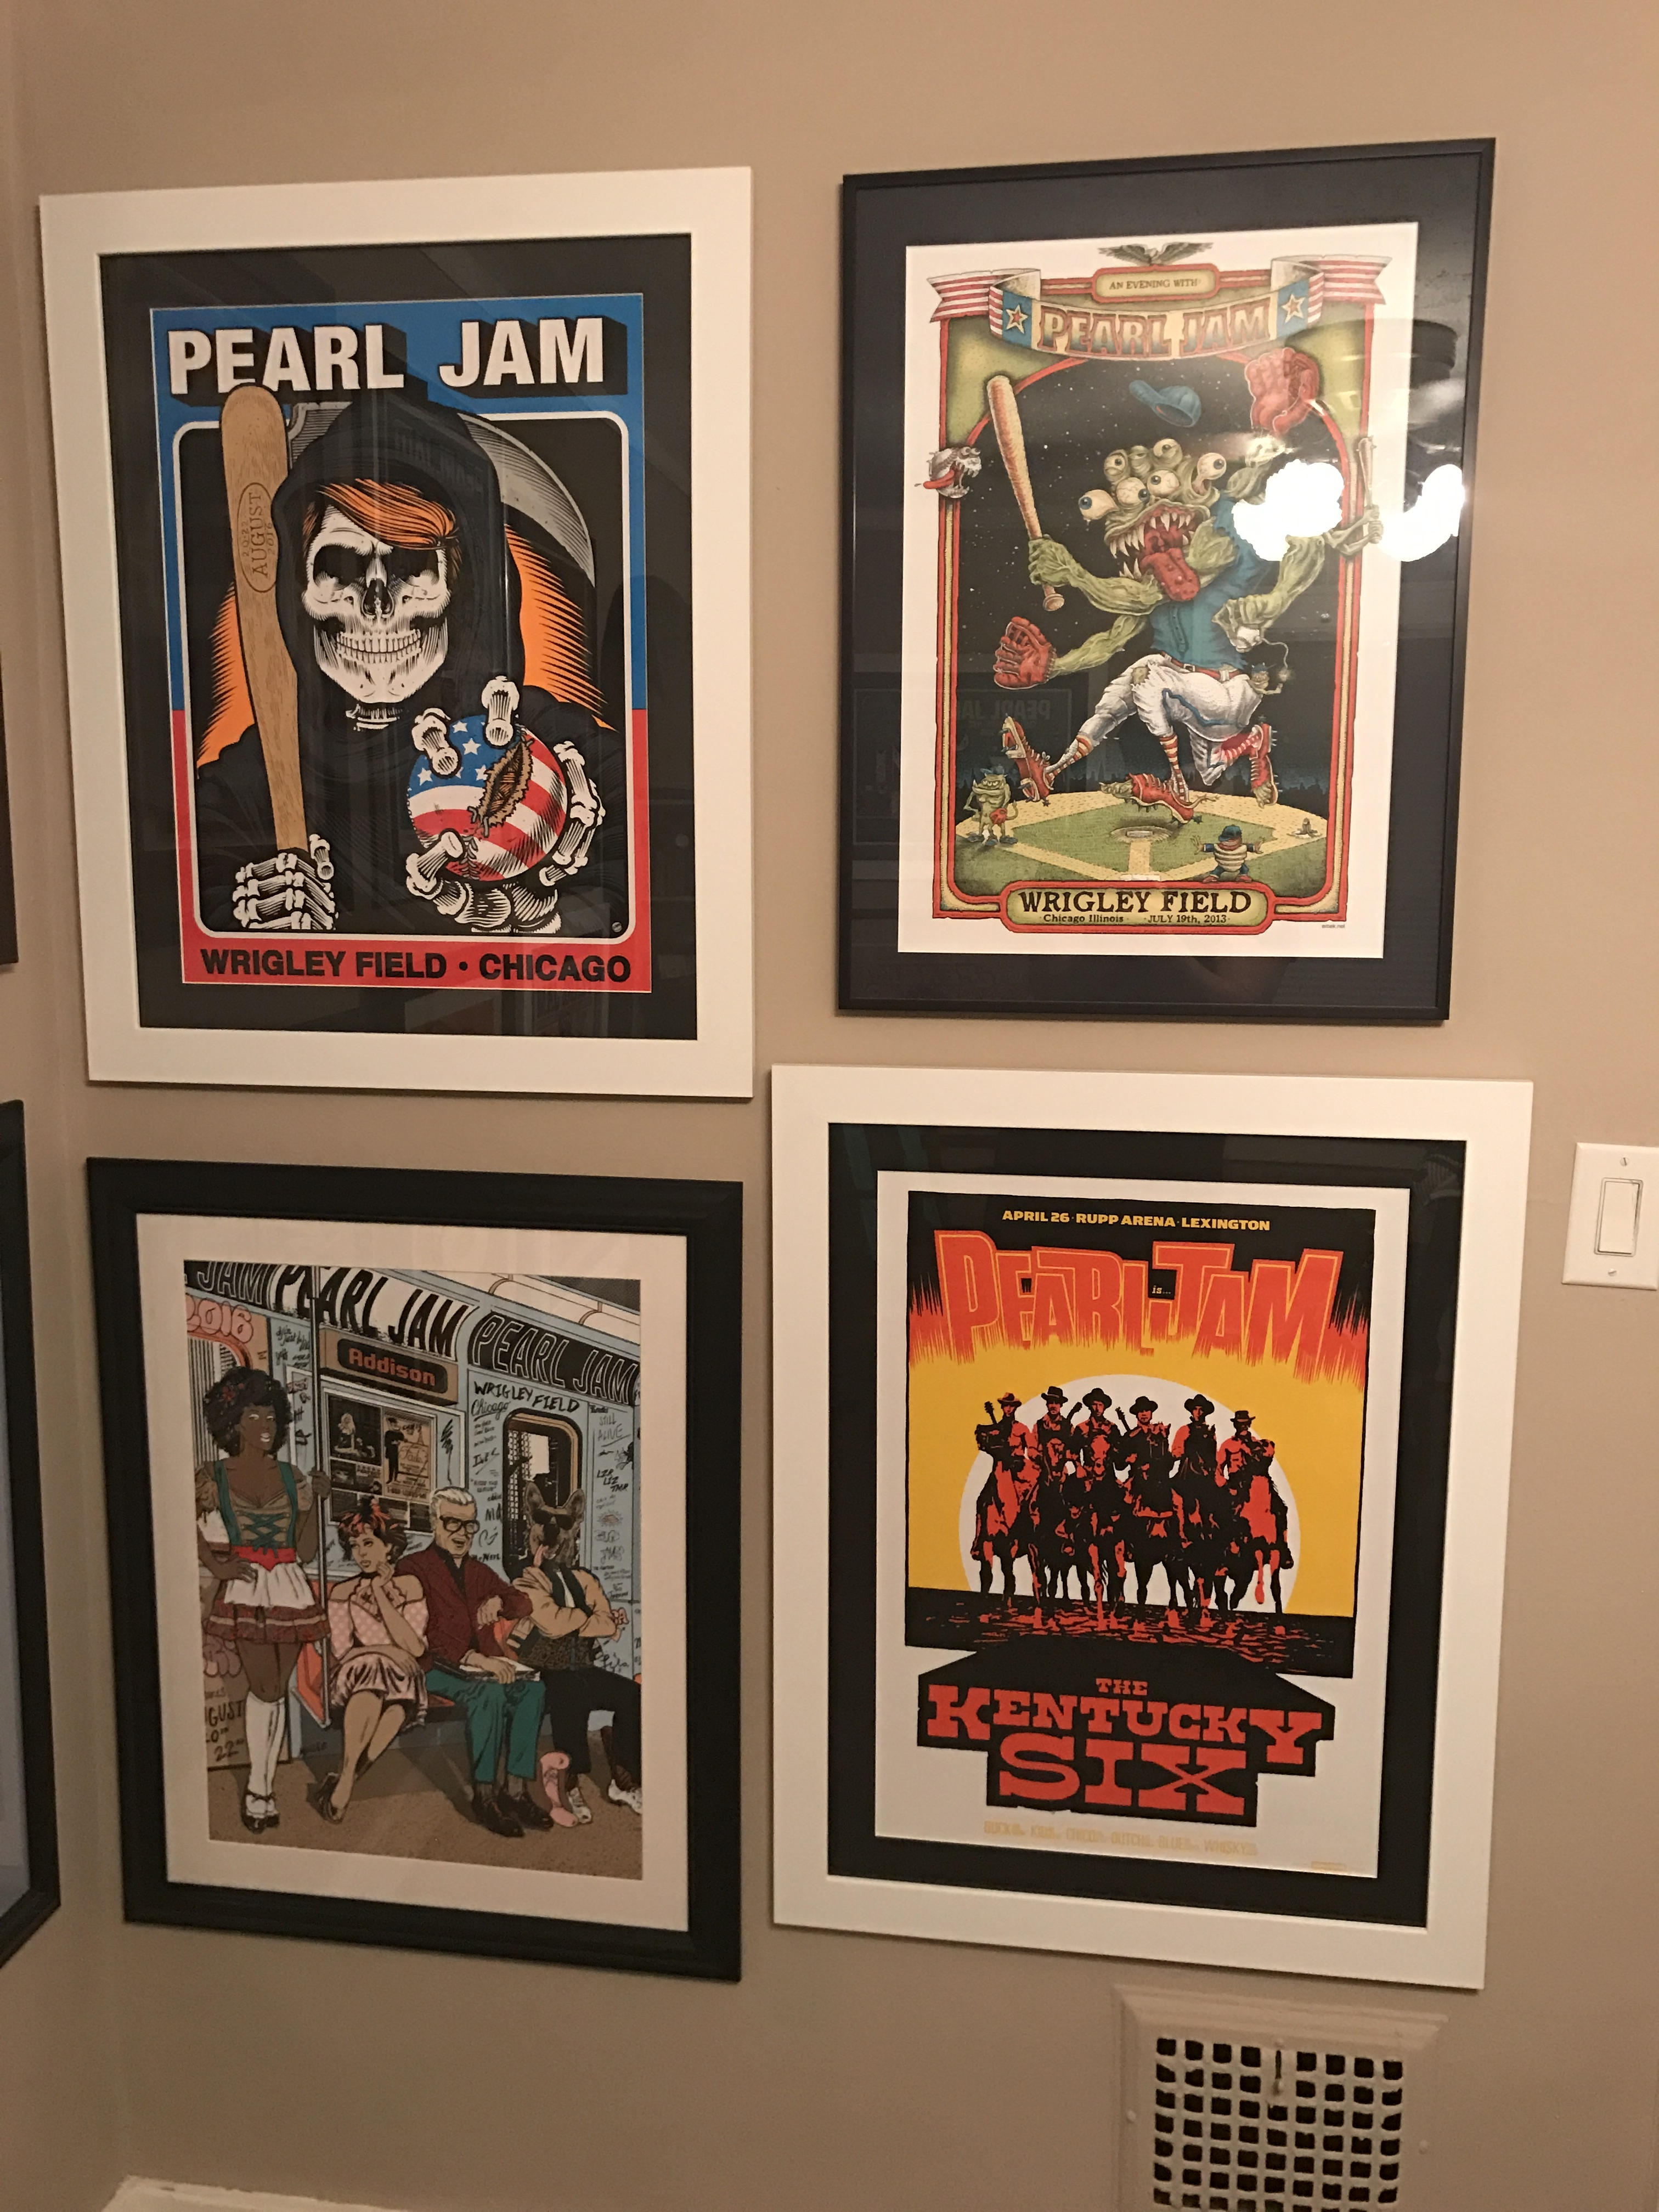 Framed Poster Thread Page 309 Pearl Jam Community